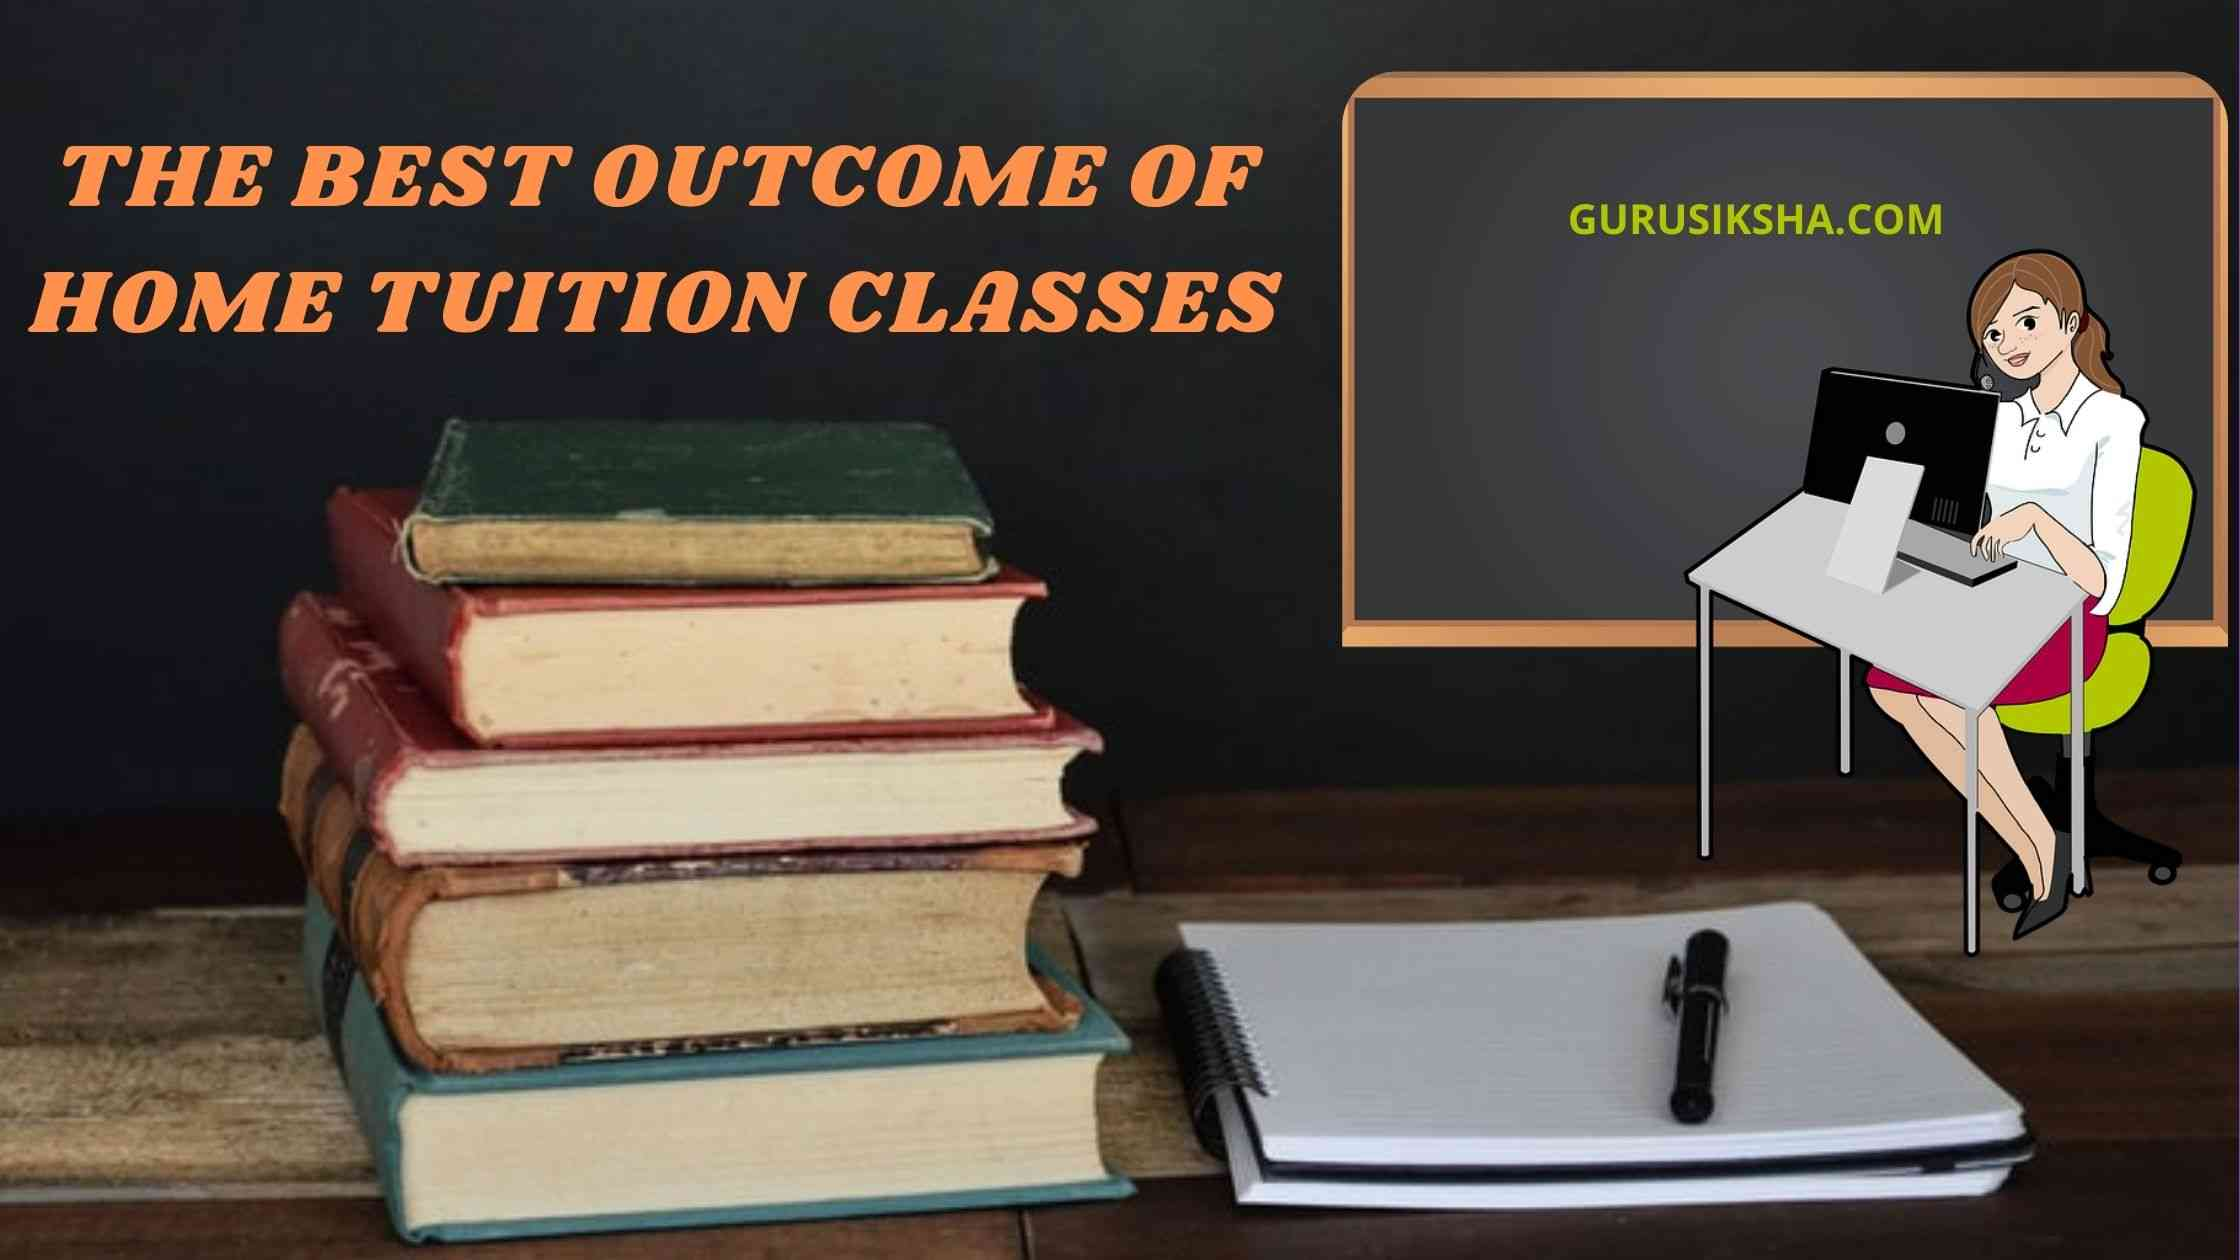 How Can Students Get The Best Outcome Of Home Tuition Classes?